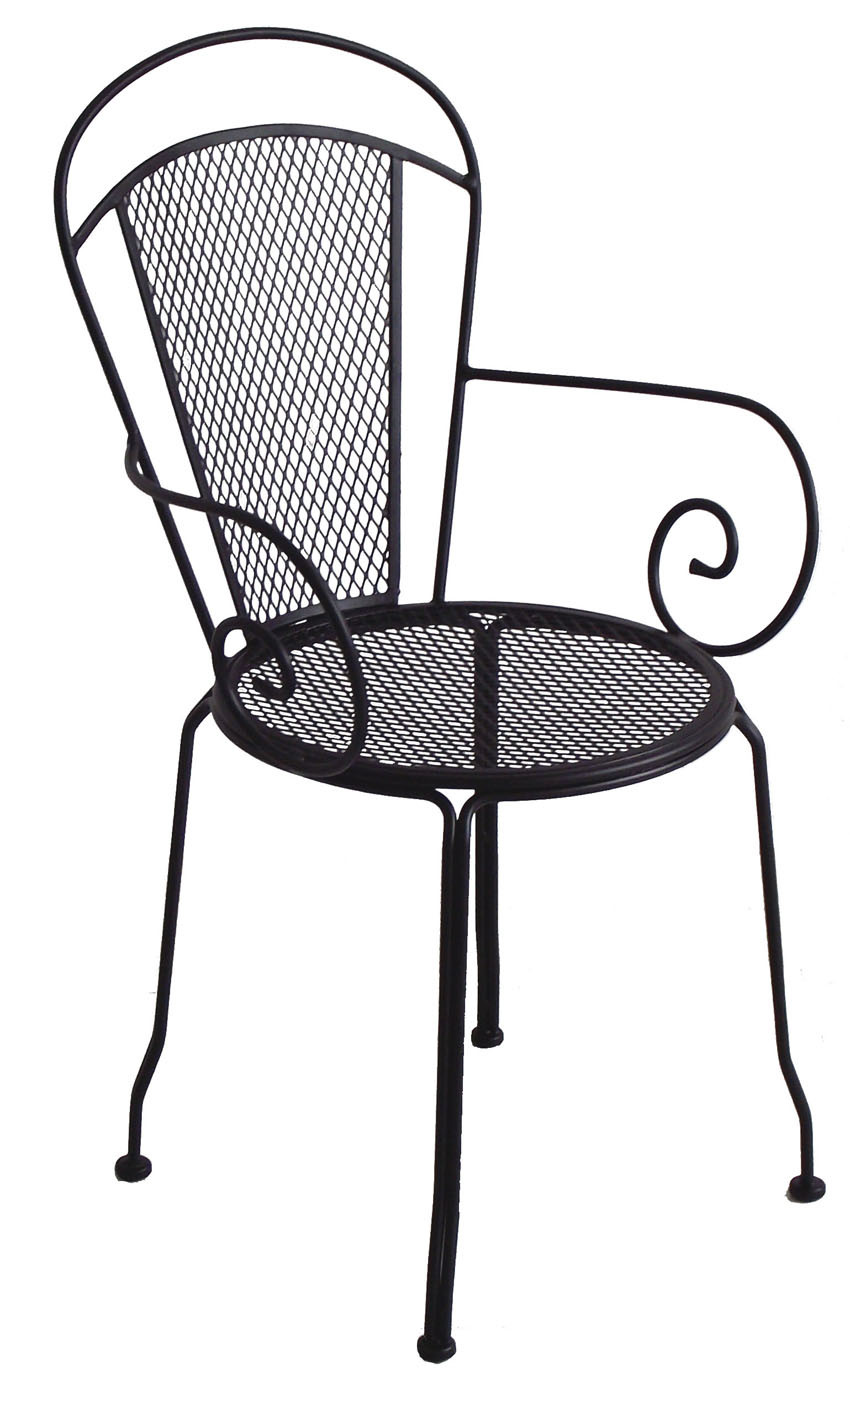 China metal furniture mesh chair 21 im 201 china for Mesh patio chairs